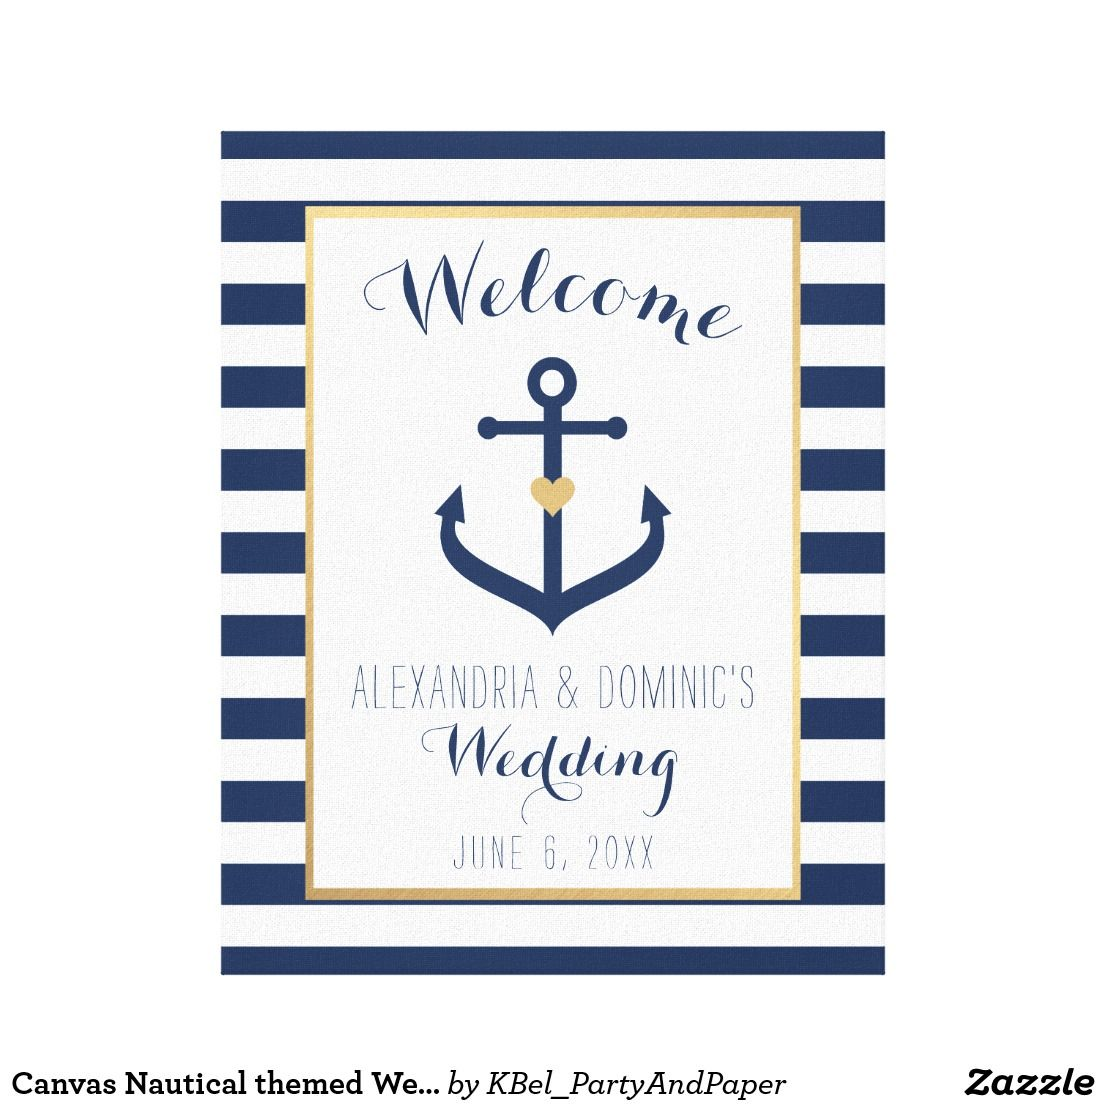 Canvas nautical themed wedding welcome sign navy decor and favor